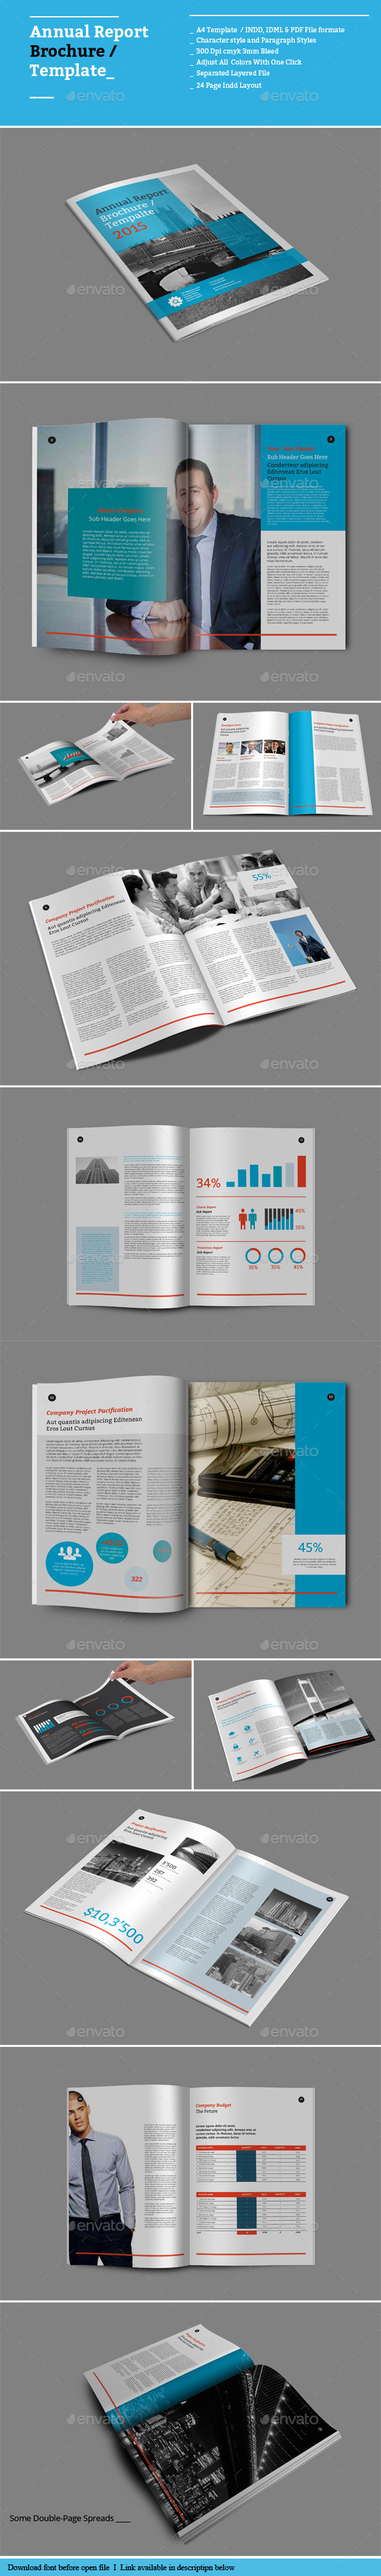 GraphicRiver Annual Report Brochure Templates 8888292